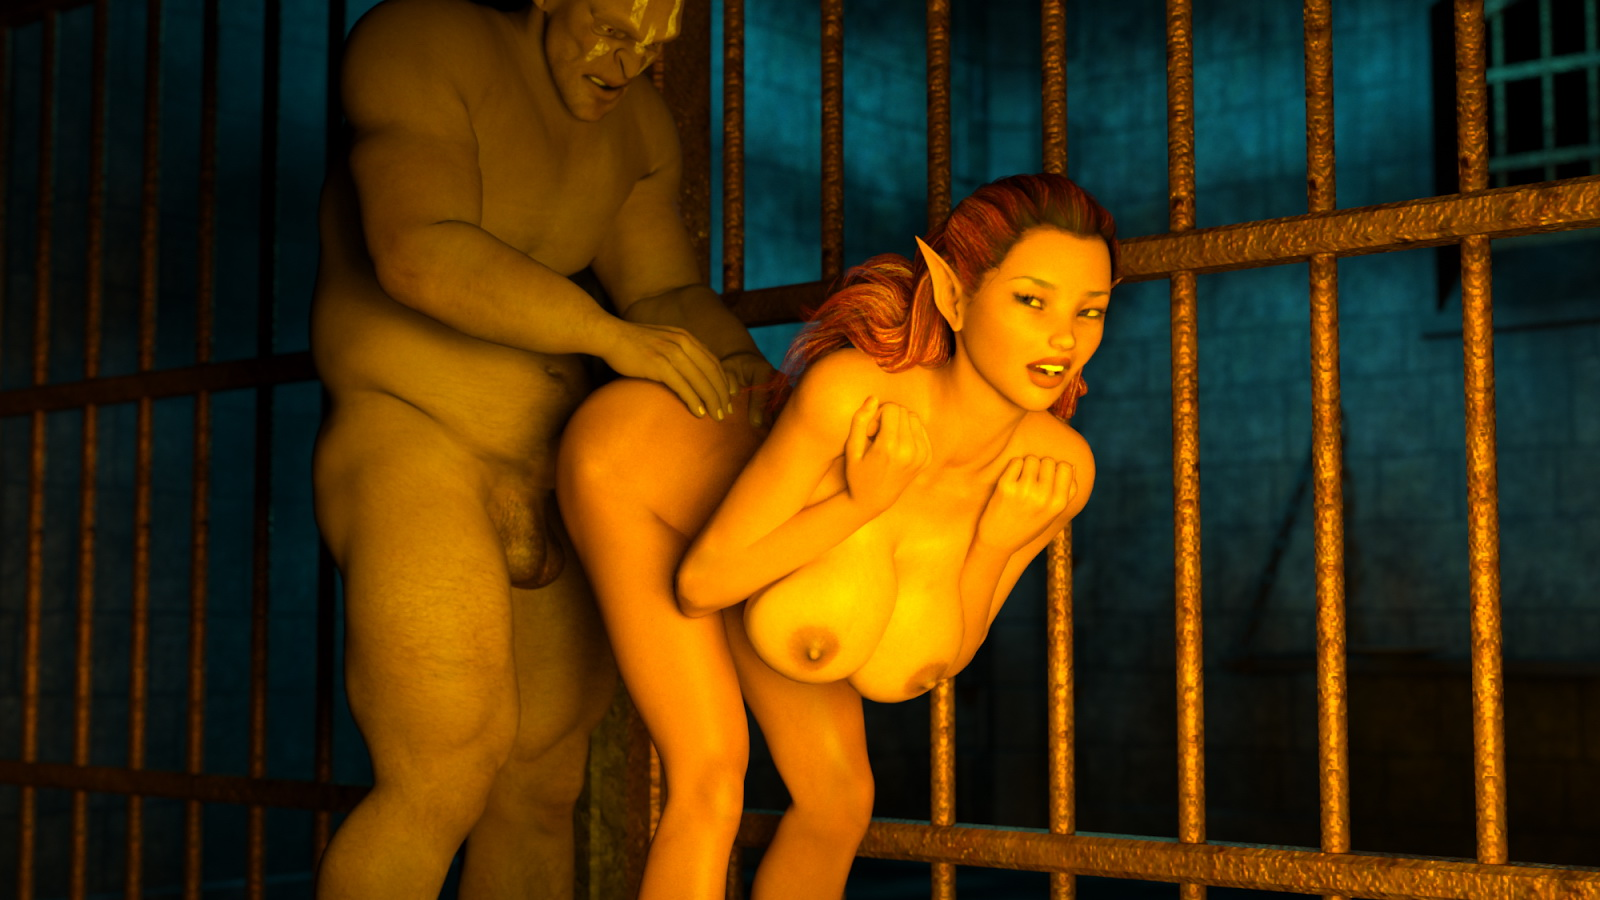 Gallery troll fucks beauty elf princess 3d  hentay clip